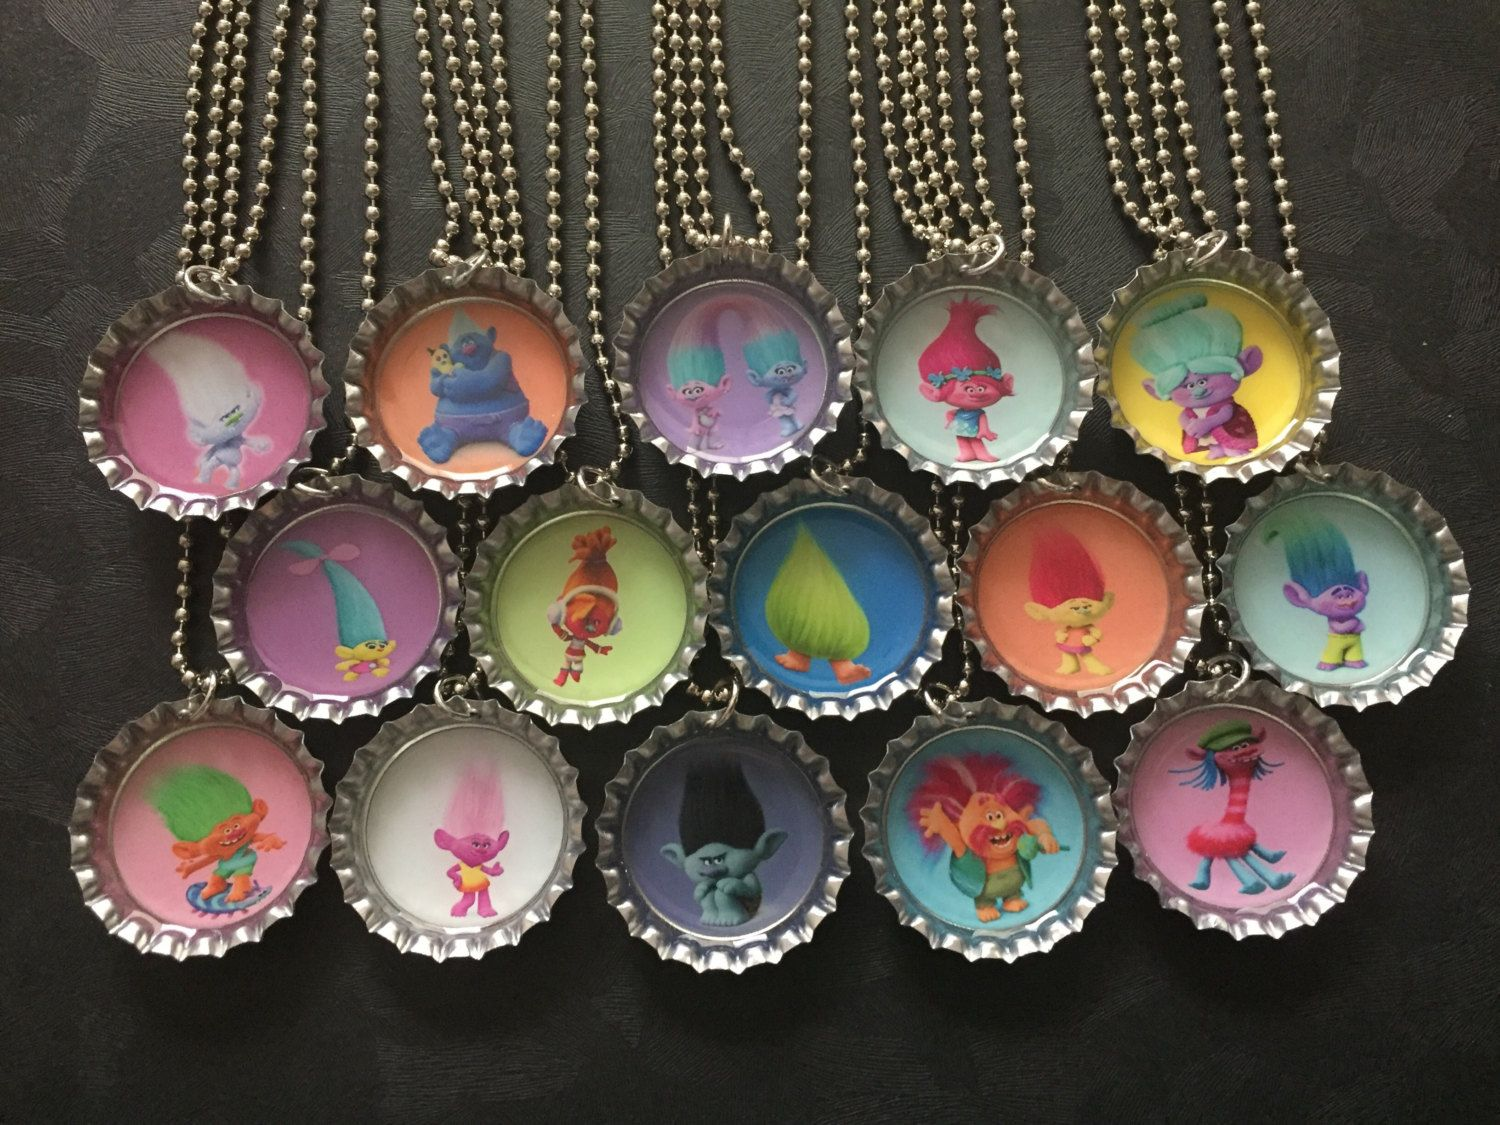 Trolls  Bottle Cap Party favors (15)  choose the images you want by PPPartyFavors on Etsy